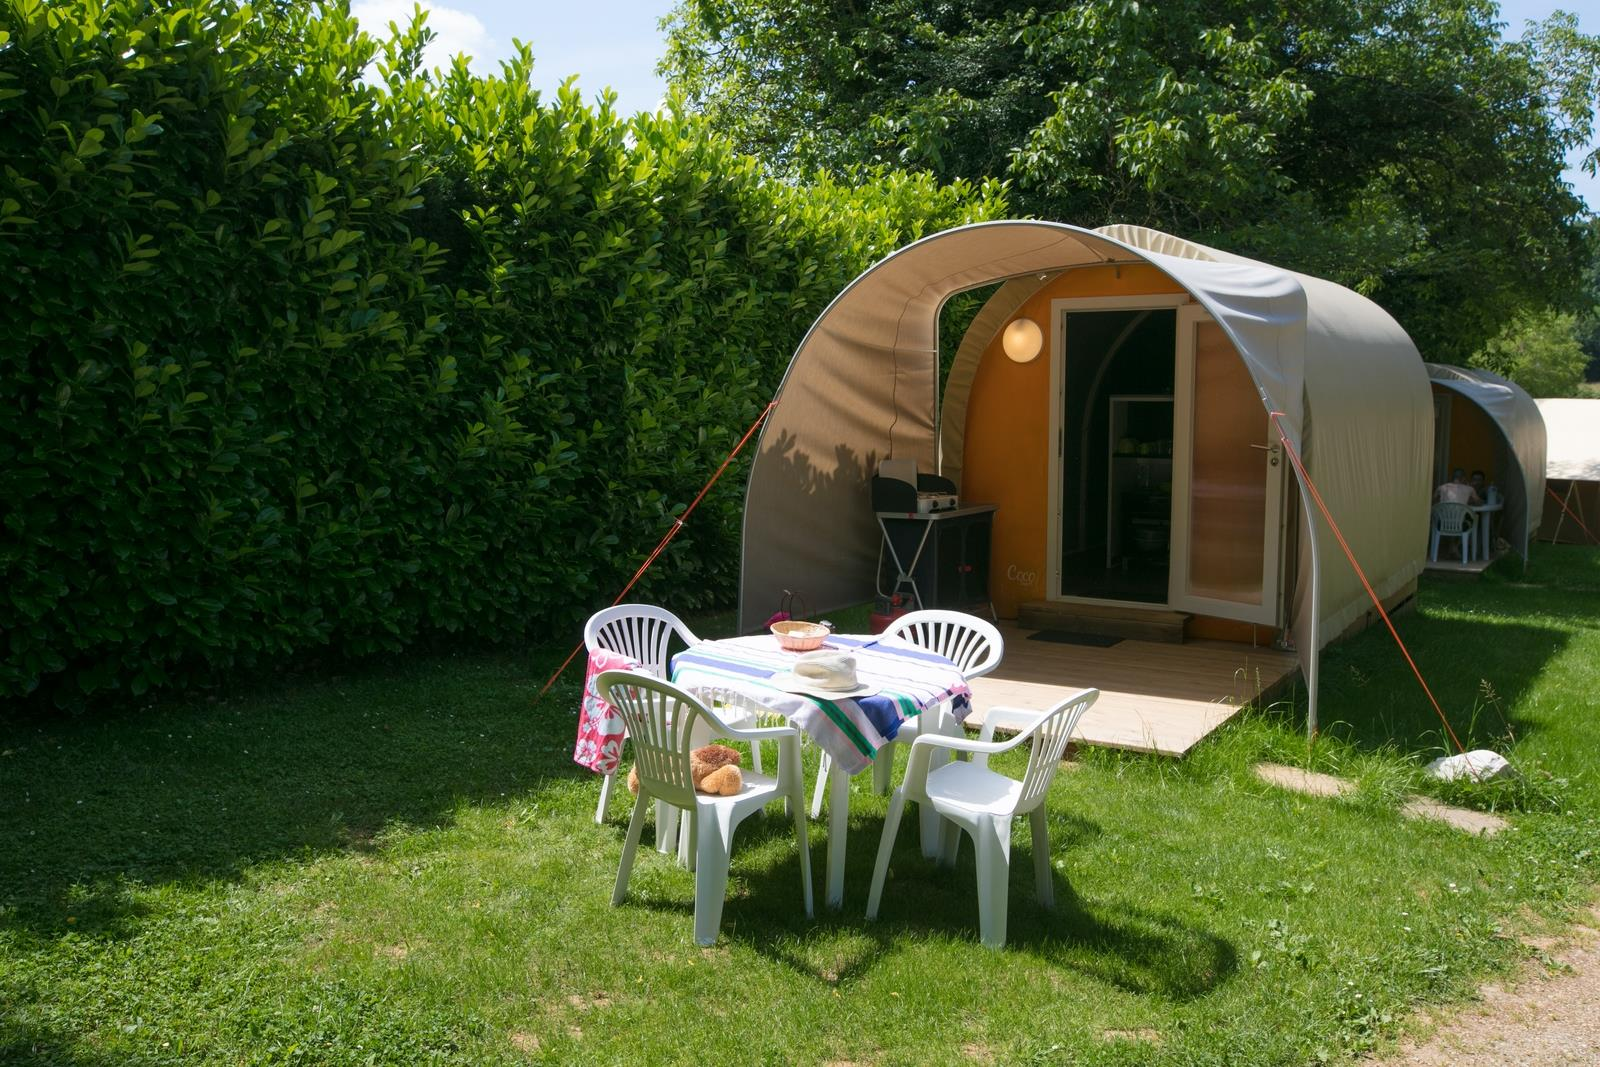 Huuraccommodatie - Coco Sweet Duo (1 Kamer) - Sites et Paysages Le Ventoulou